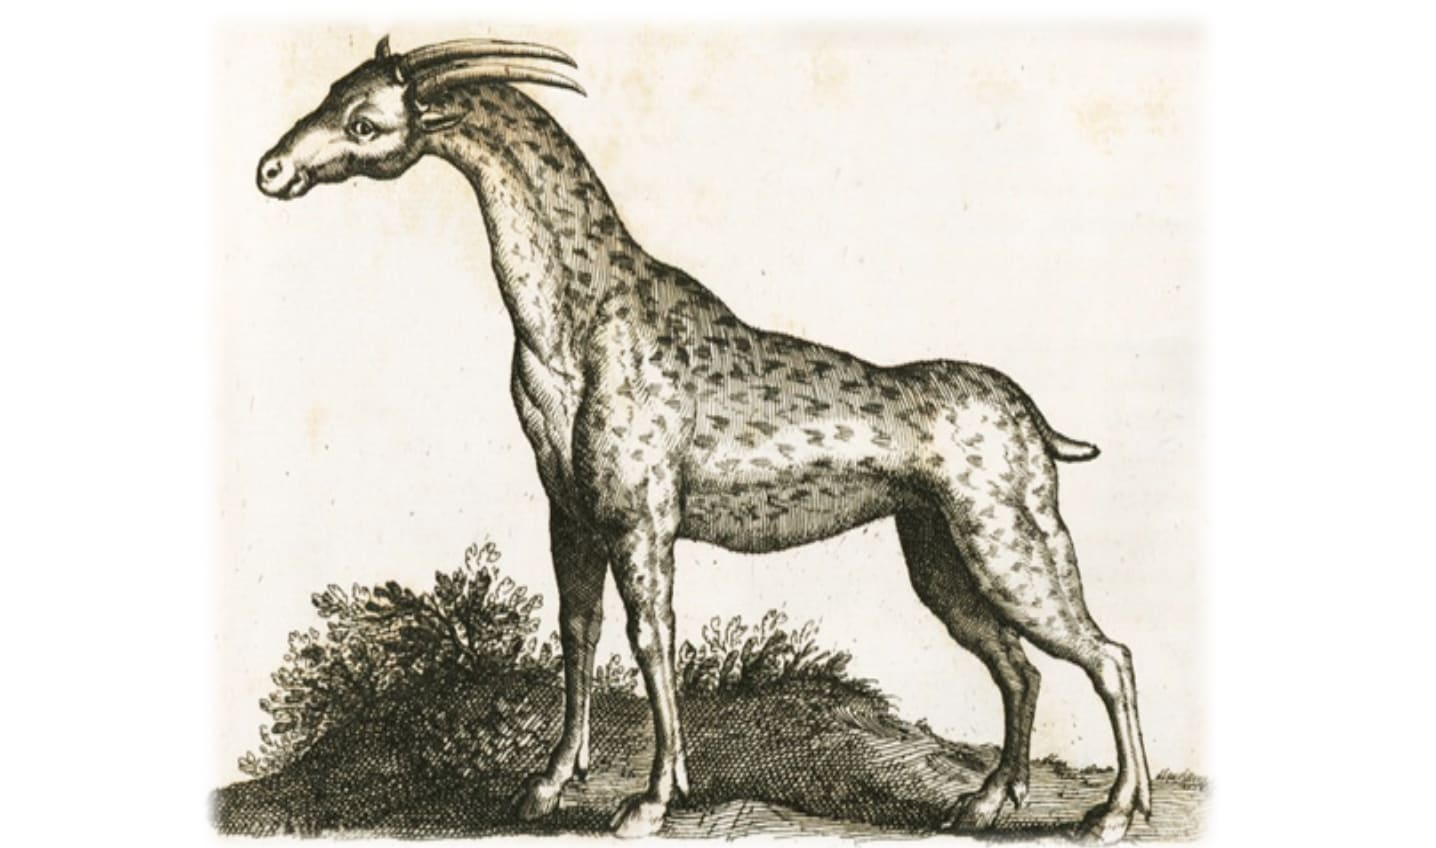 Camelopard Drawing